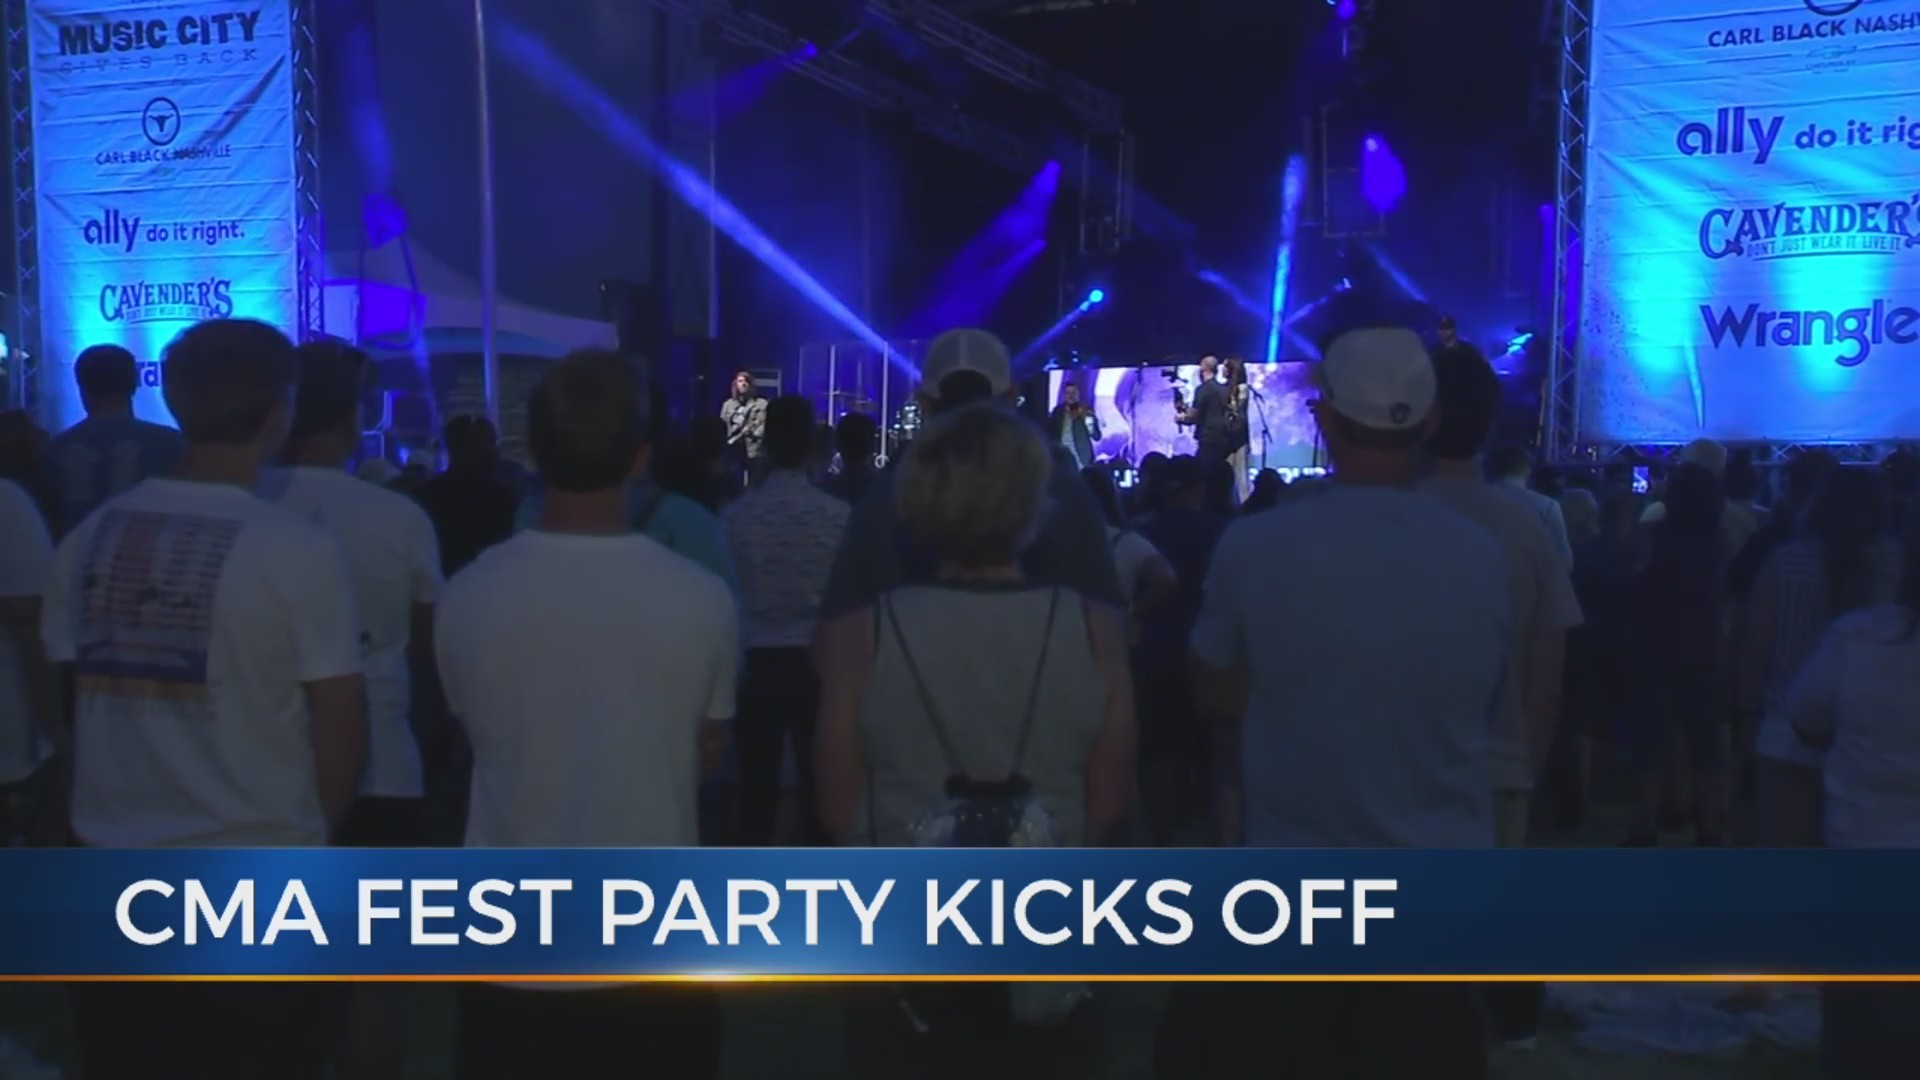 Thousands attend Music City Gives Back to kick off CMA Fest week